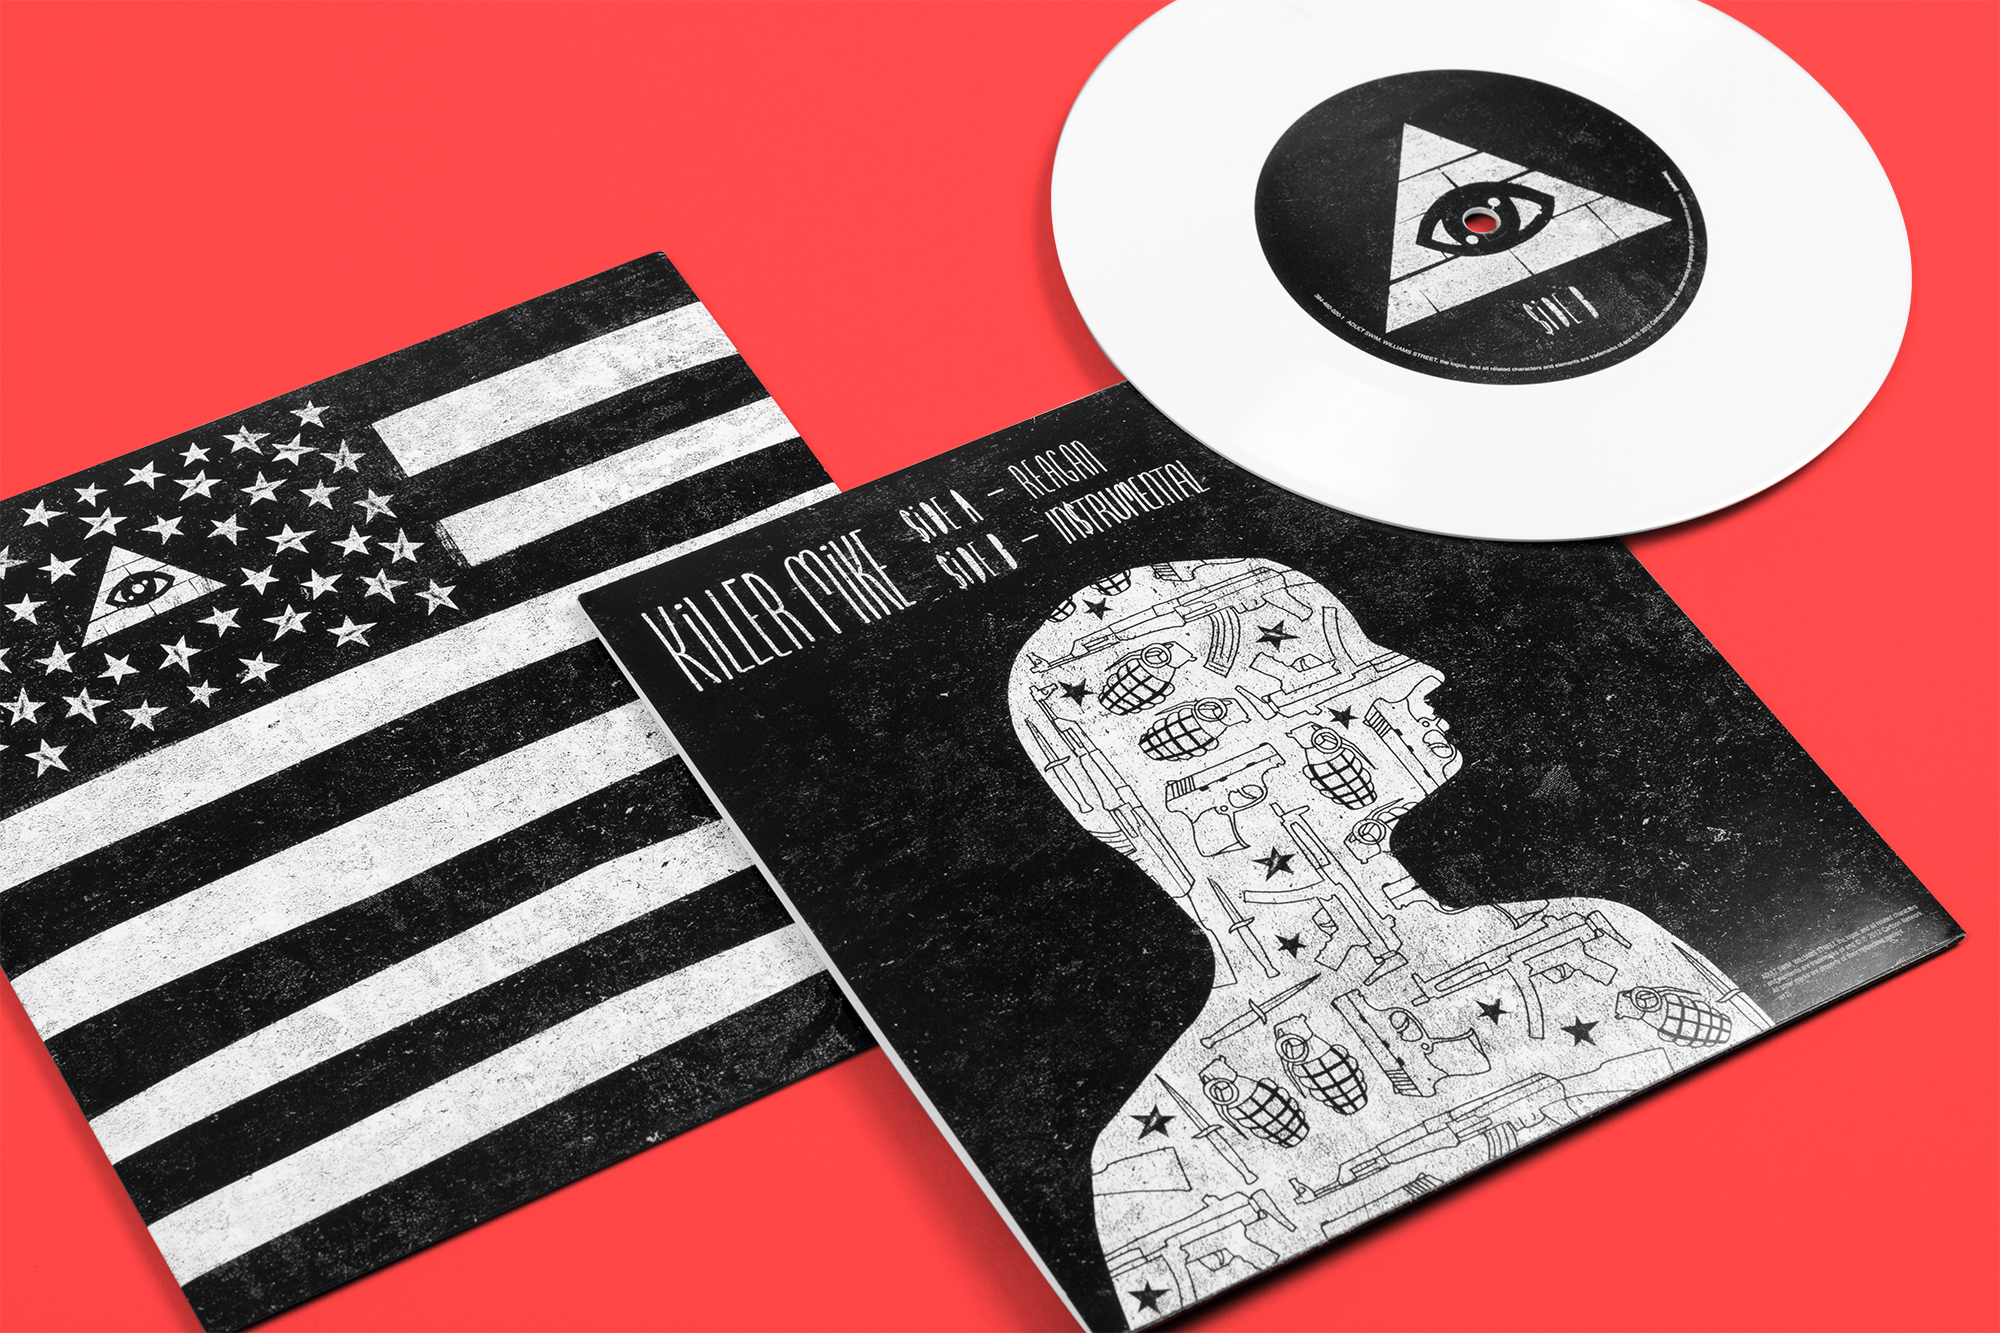 KILLER MIKE - REAGAN /// Art direction, design and illustration for limited edition vinyl packaging. Illustration's created in partnership with Daniel Garcia.